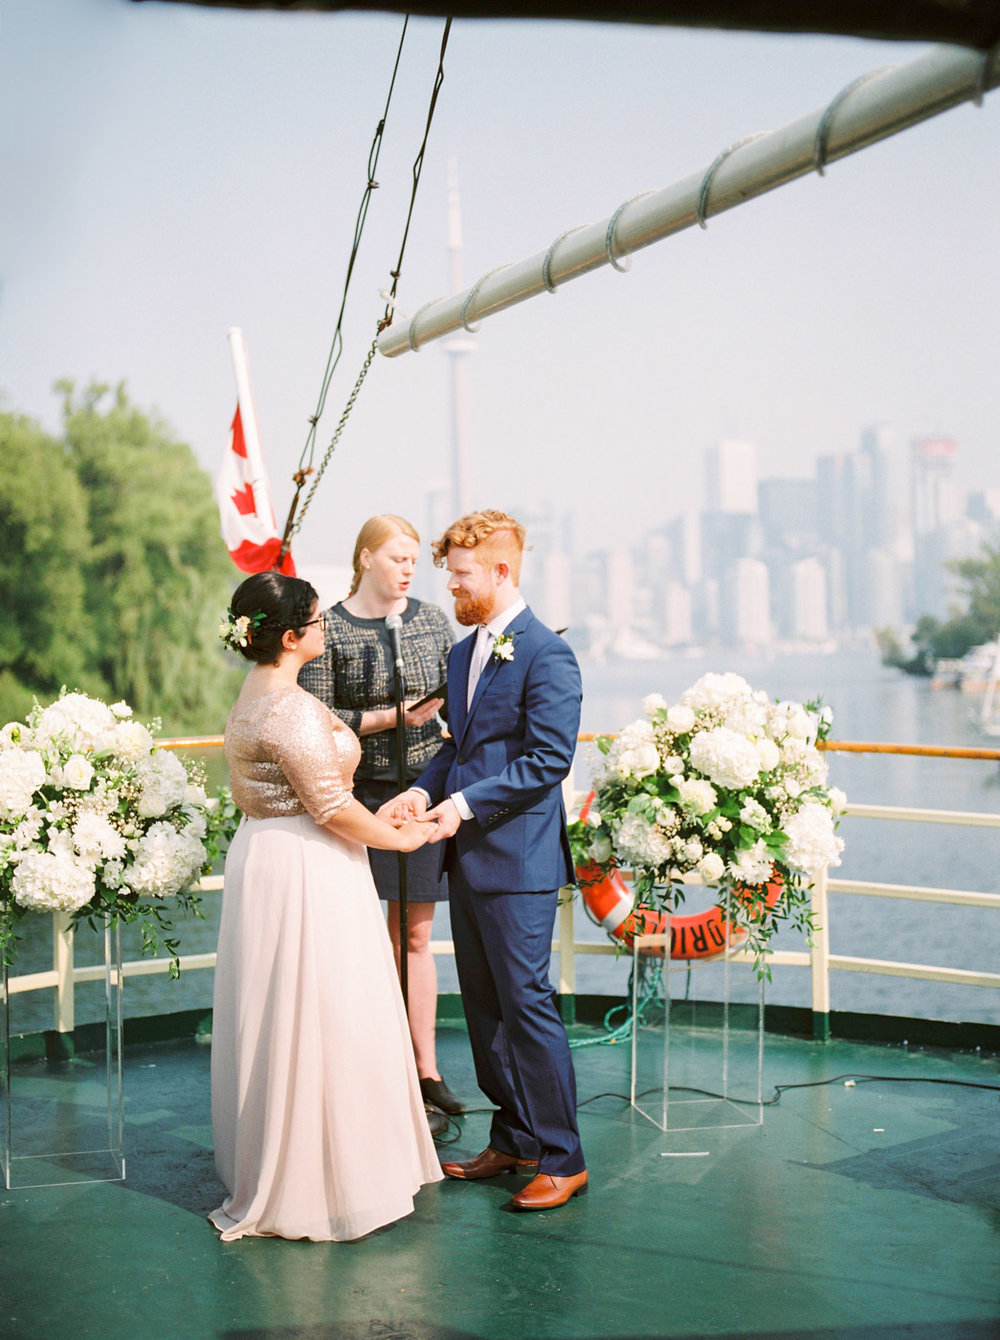 corynn_fowler_photography_toronto_wedding_boat_harbourfont-319.jpg